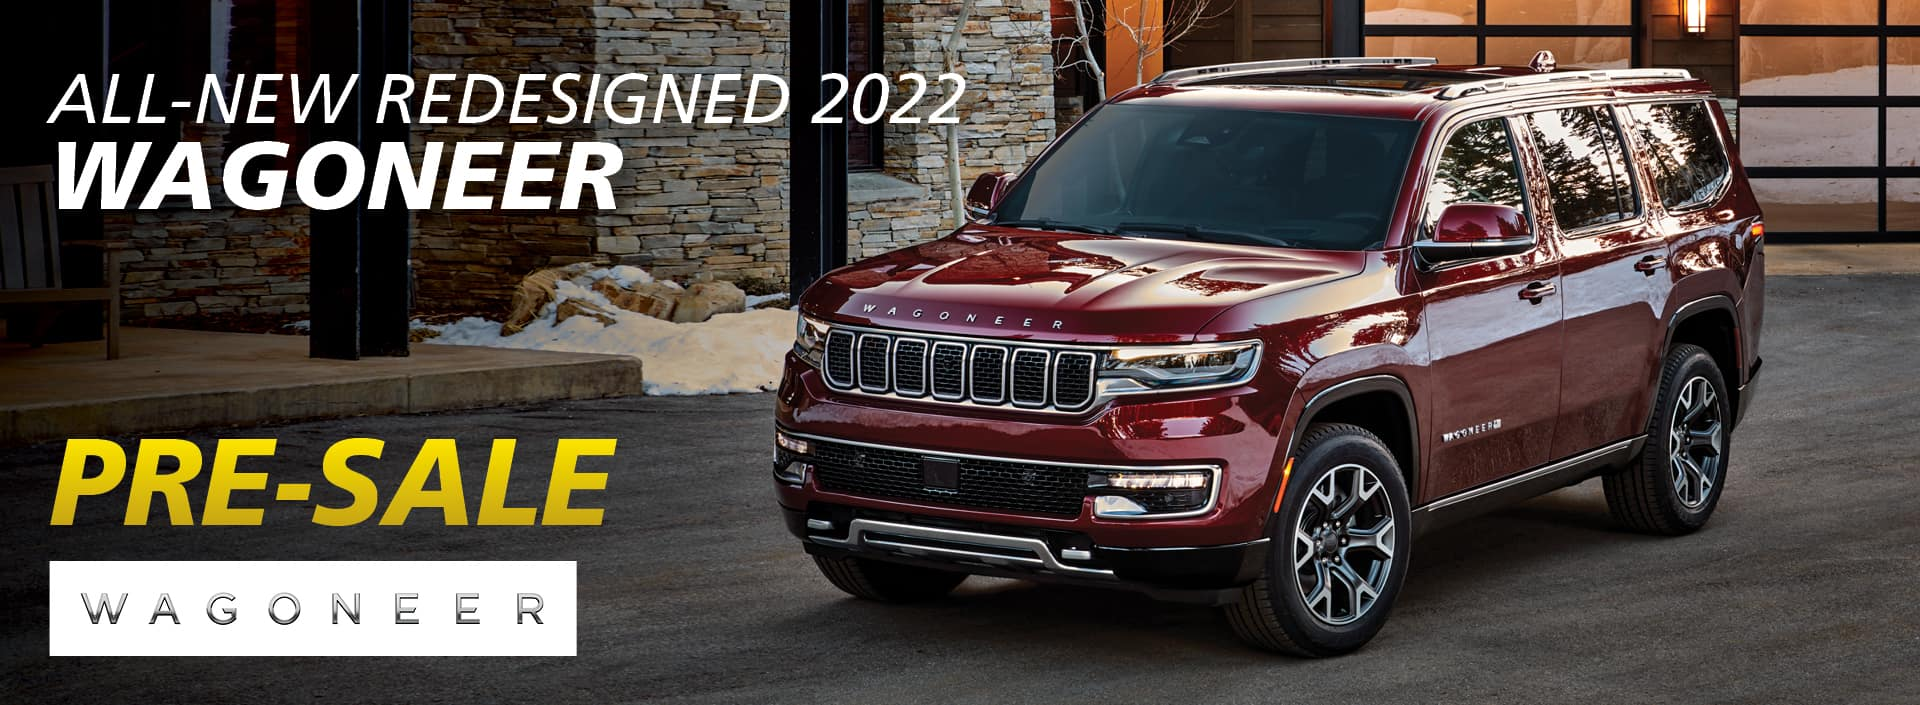 PRES-11520 WEB BANNER REDESIGNED 2022 JEEP WAGONEER 1920x705_JPGS1_1920X705